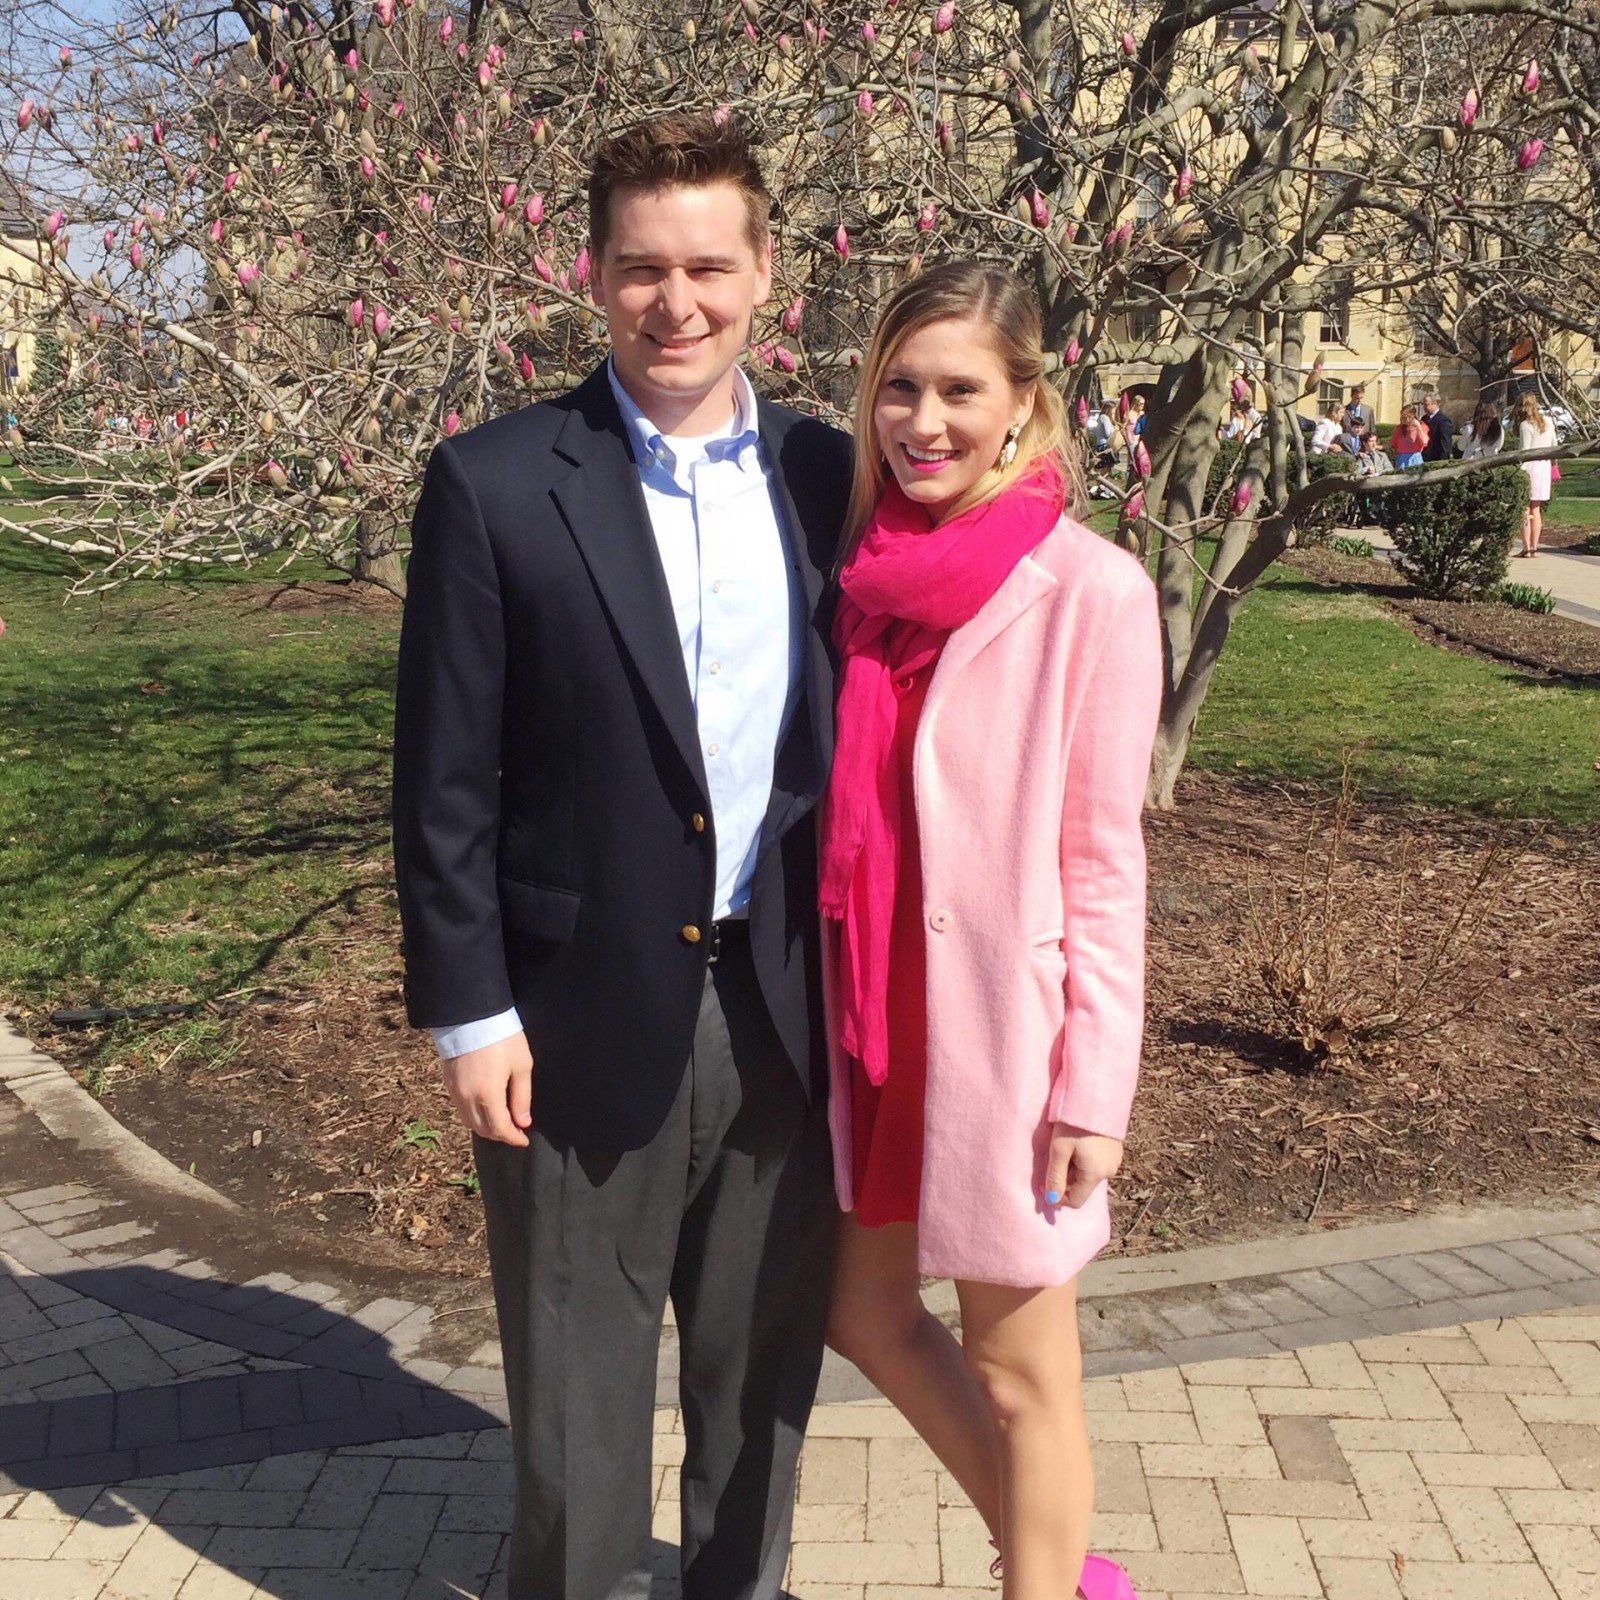 Pink for Easter via @mkminnis_GHL